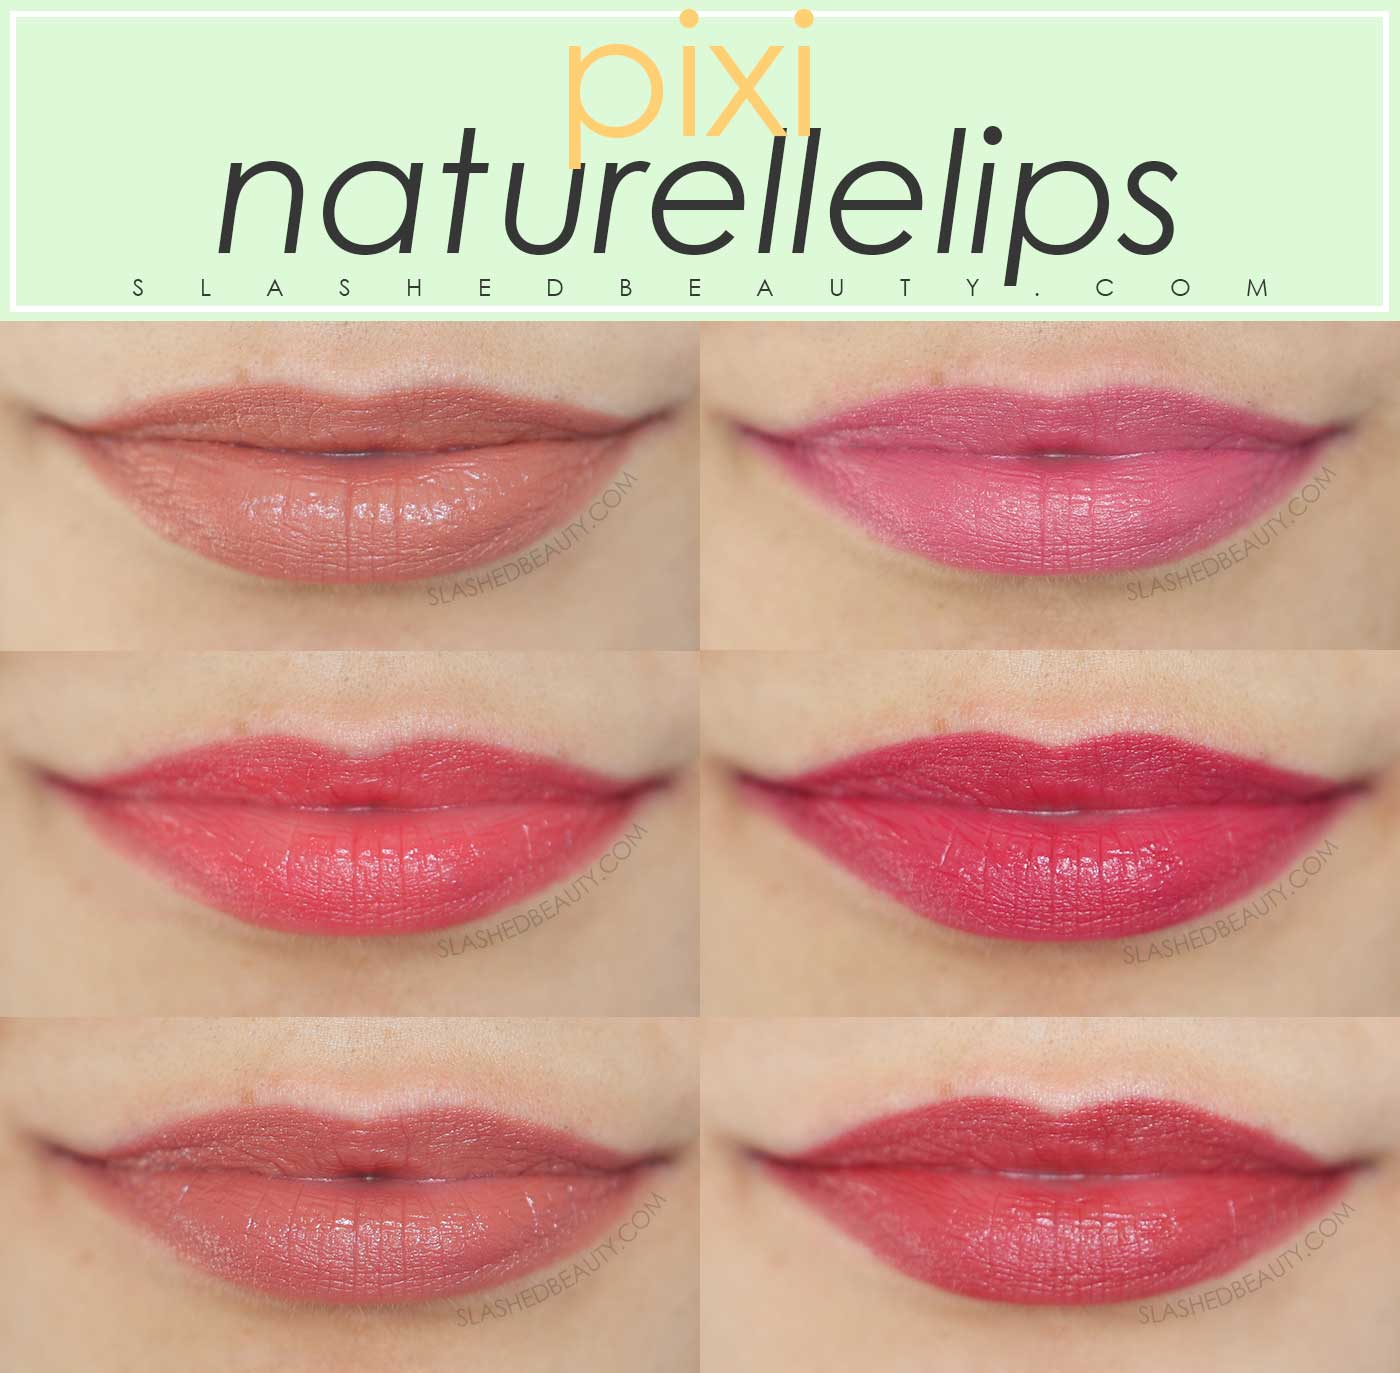 Pixi Naturellelips Lip Swatches | Pecan, Peony, Poppy, Raspberry, Nectar, Primrose | Slashed Beauty